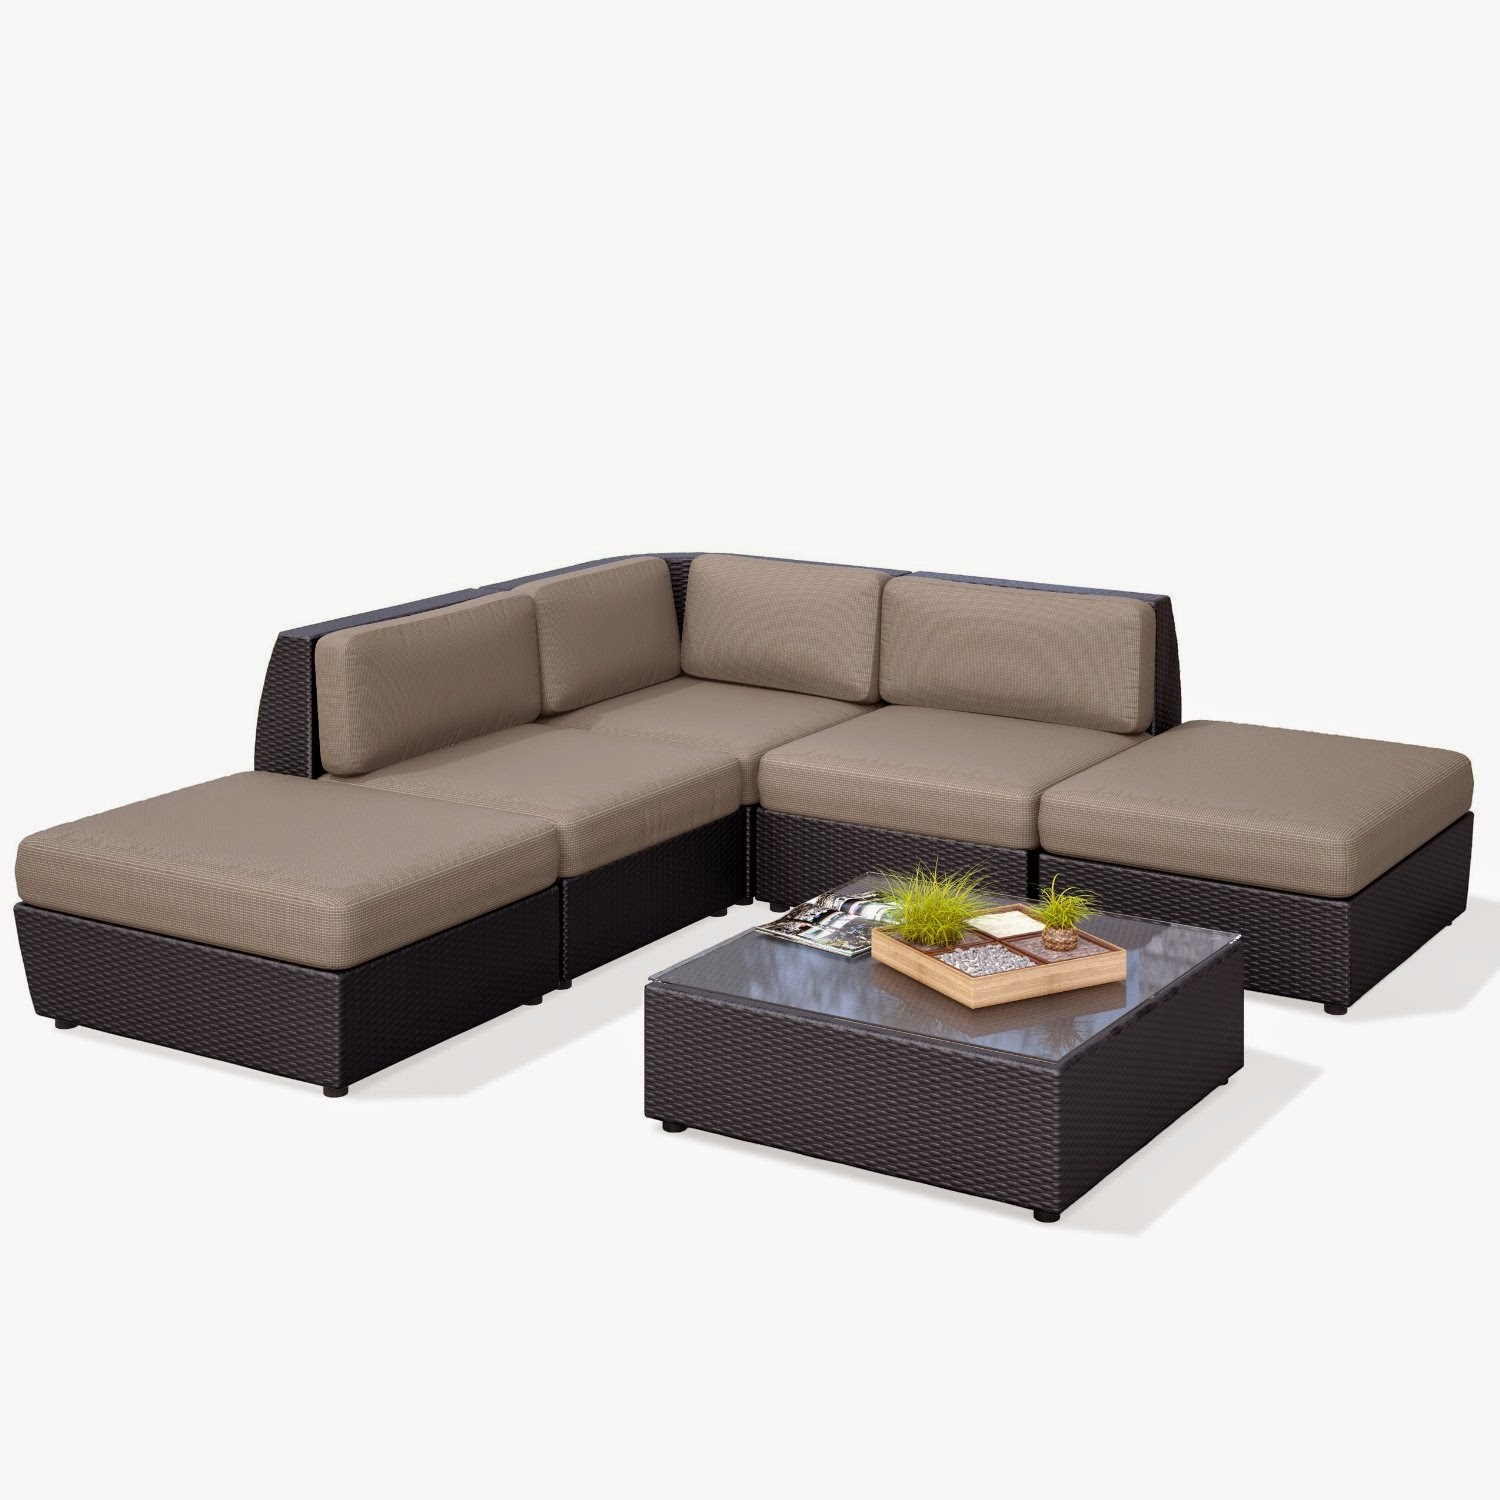 Curved sofa couch for sale large curved corner sofas for Large sofa small room